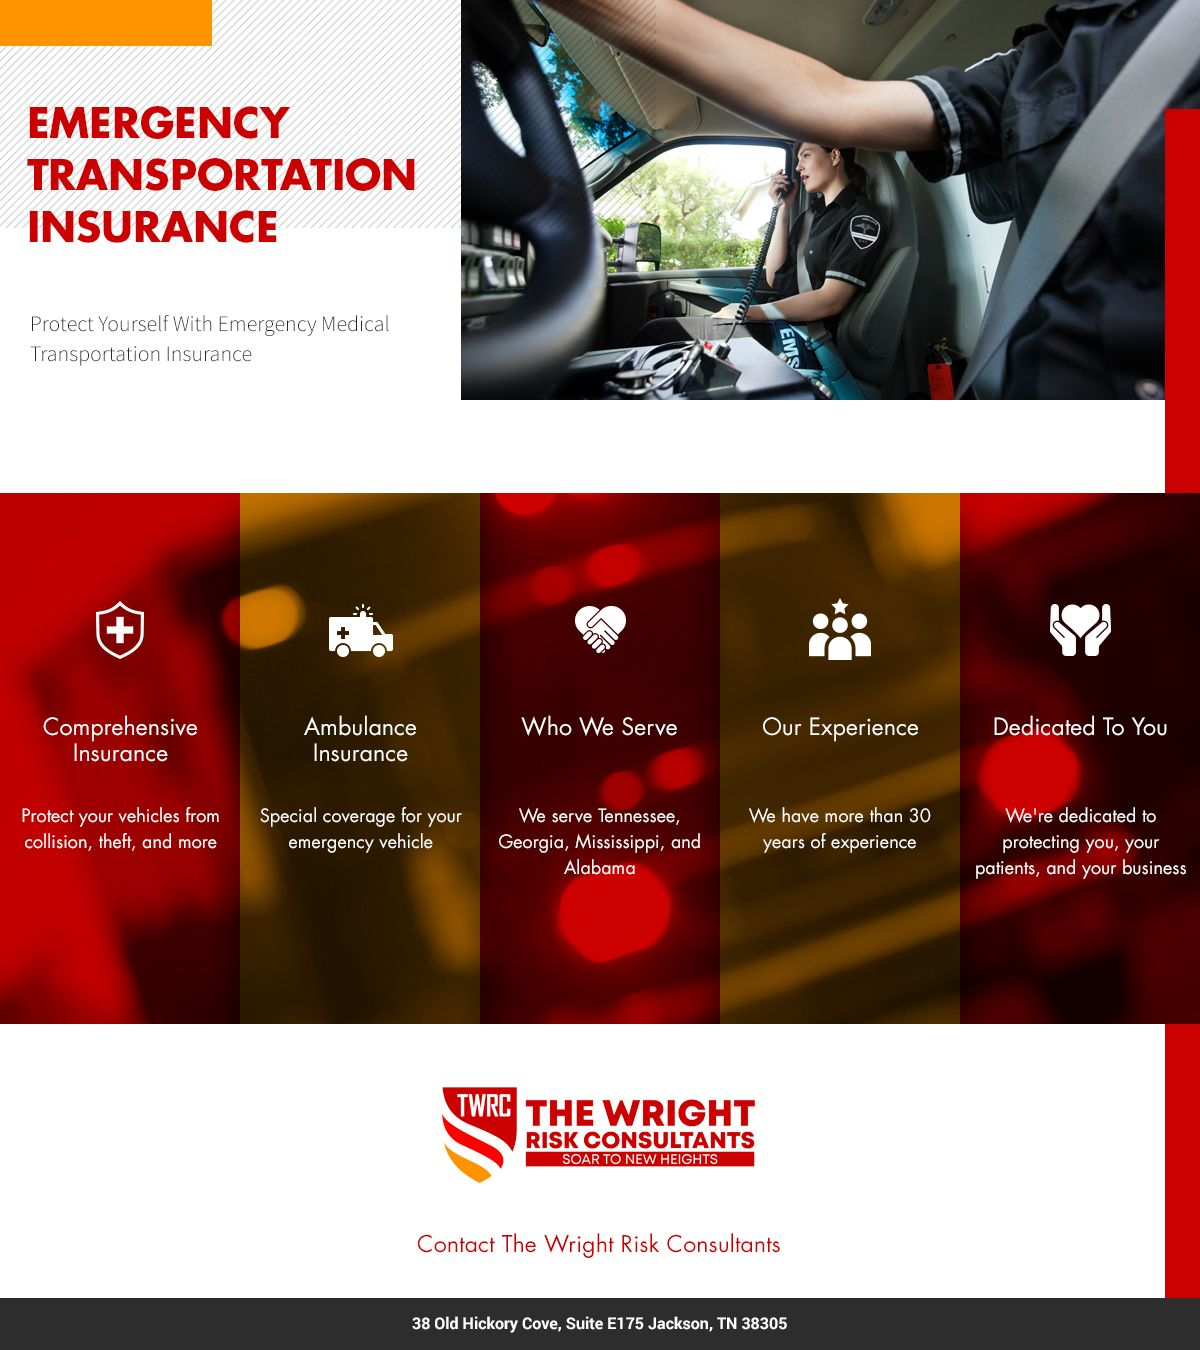 Emergency-Transportation-Insurance-Infographic.jpg